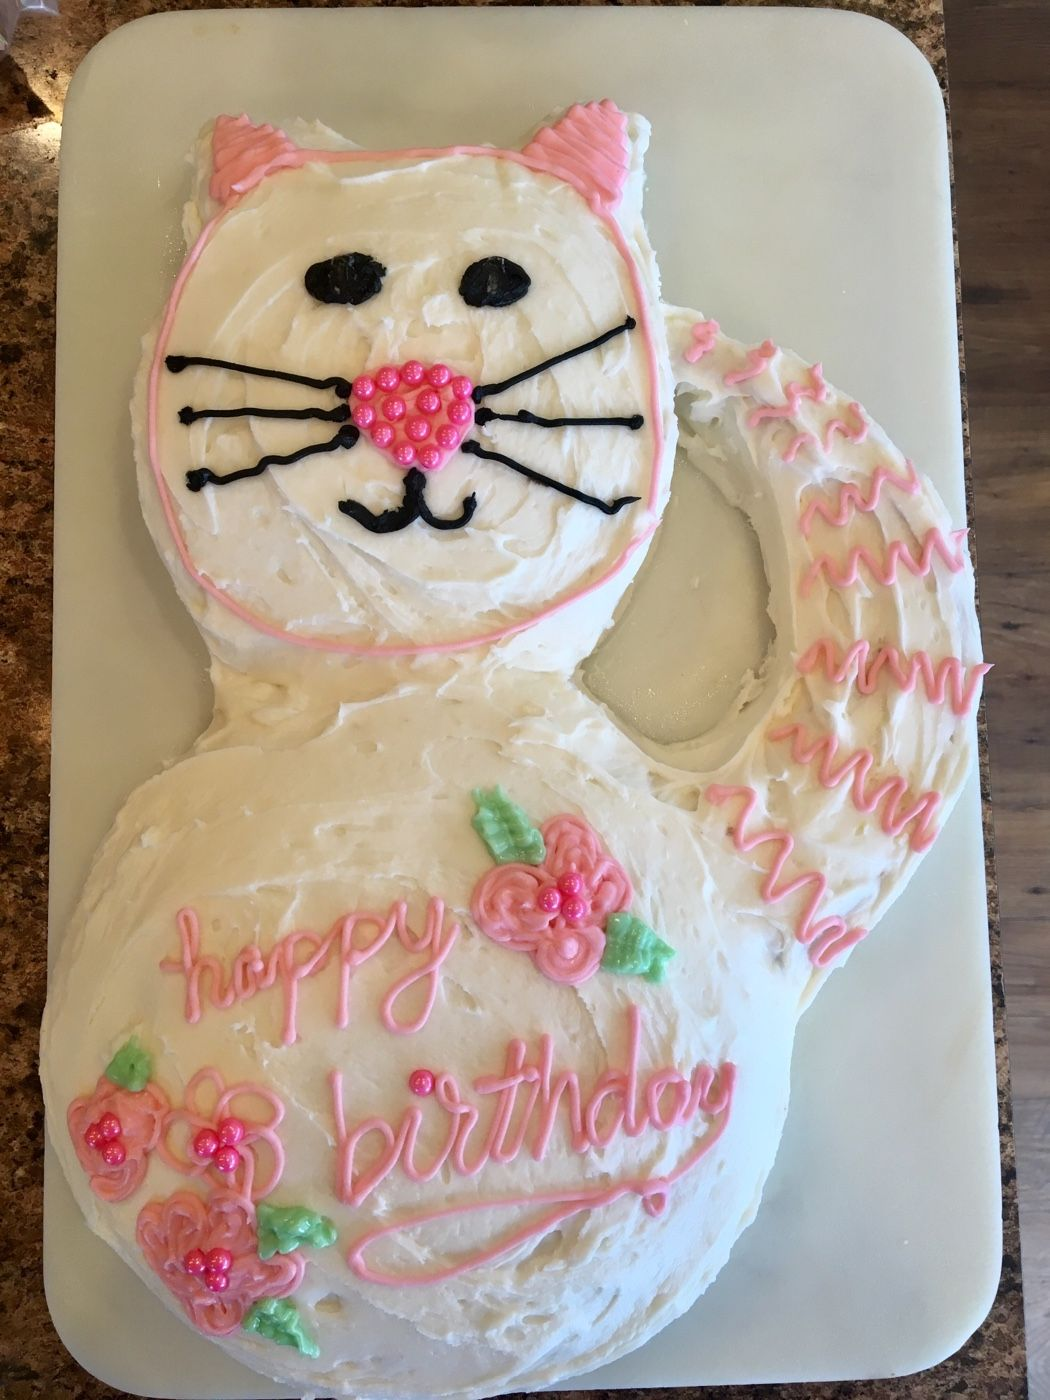 How to make an easy kitty cat cake from a box mix and